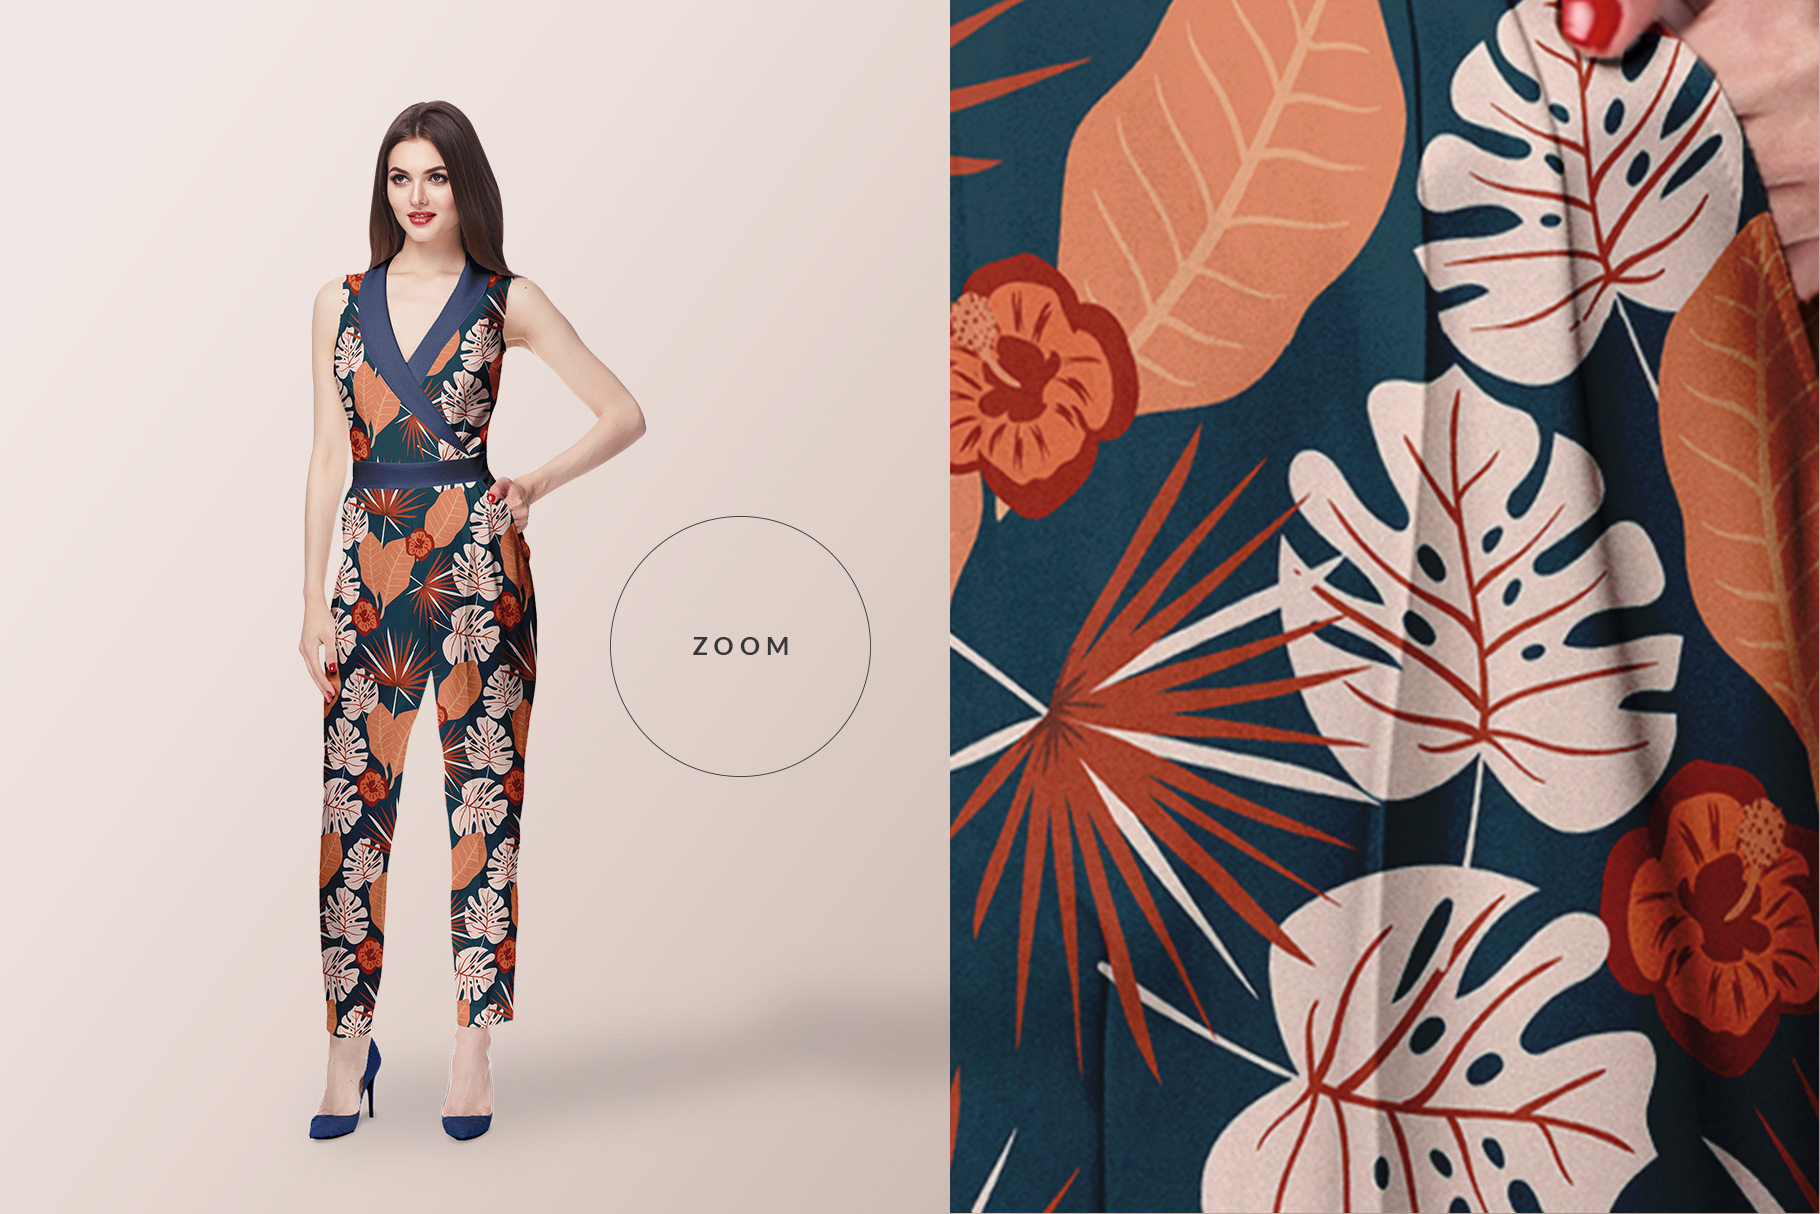 Ladies Fashion Apparel Mockup Collection